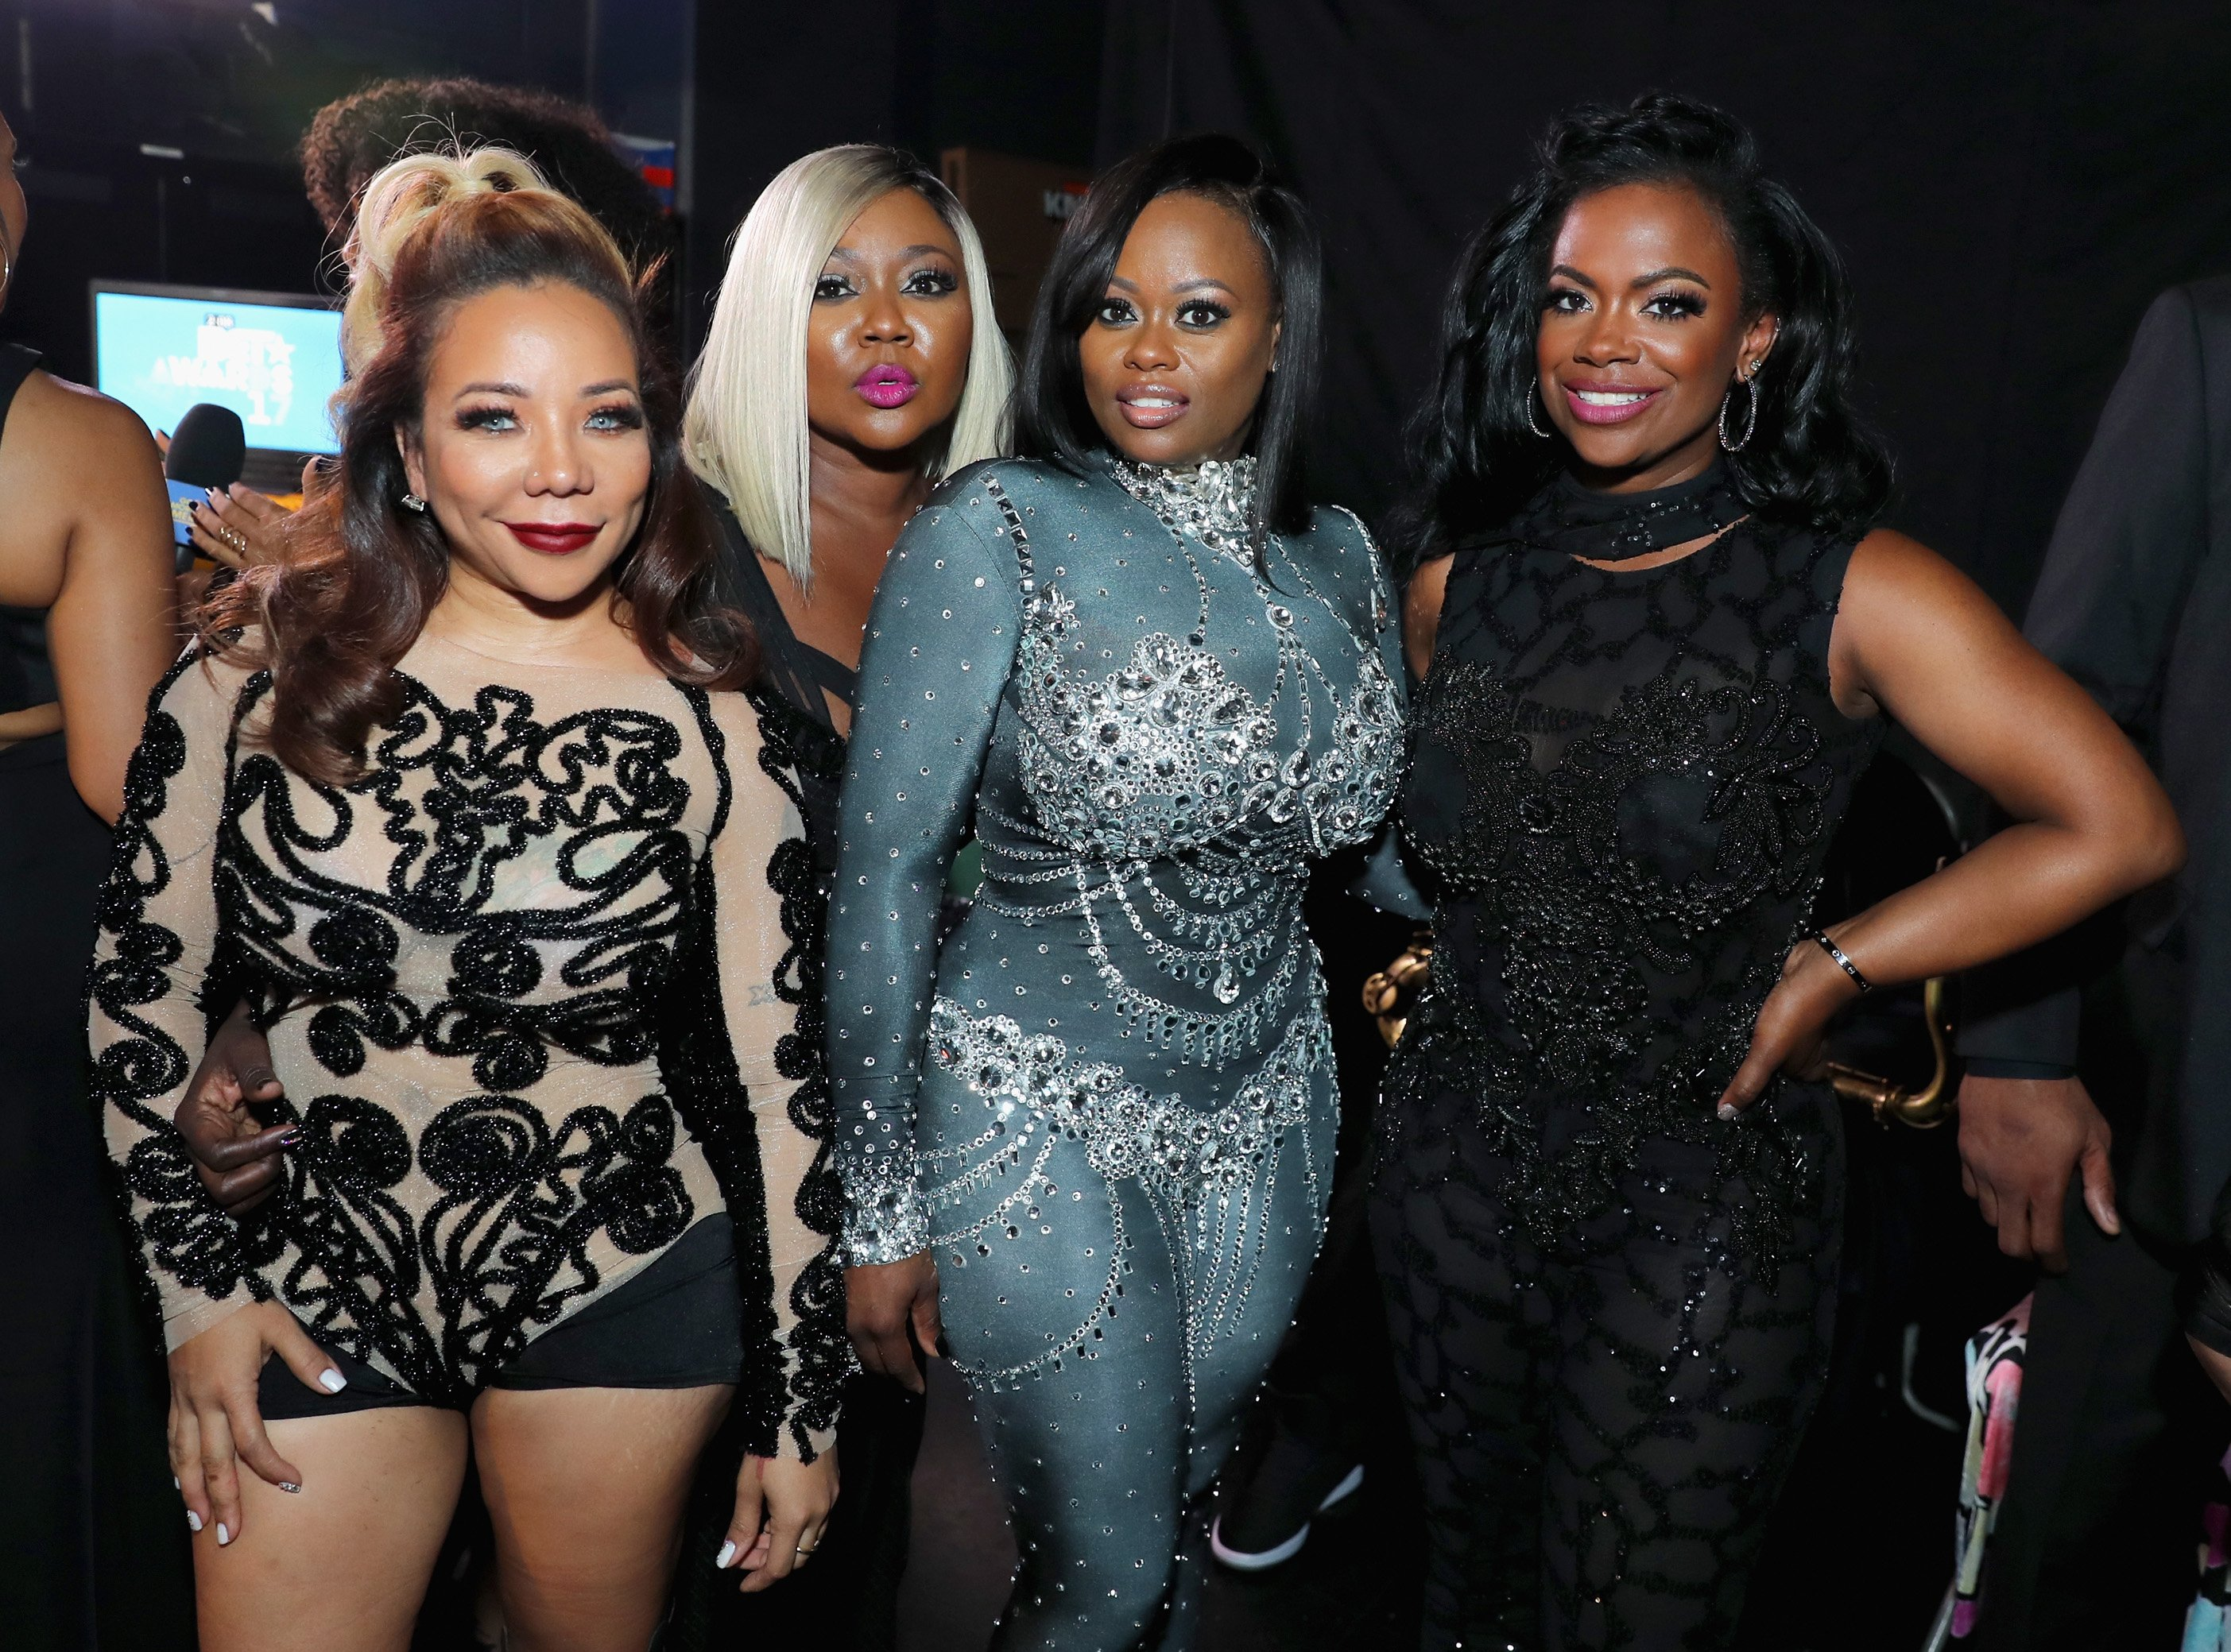 Tiny Harris, LaTocha Scott, Tamika Scott, and Kandi Burruss pose at the 2017 BET Awards at Microsoft Theater on June 25, 2017 in Los Angeles, California. | Source: Getty Images